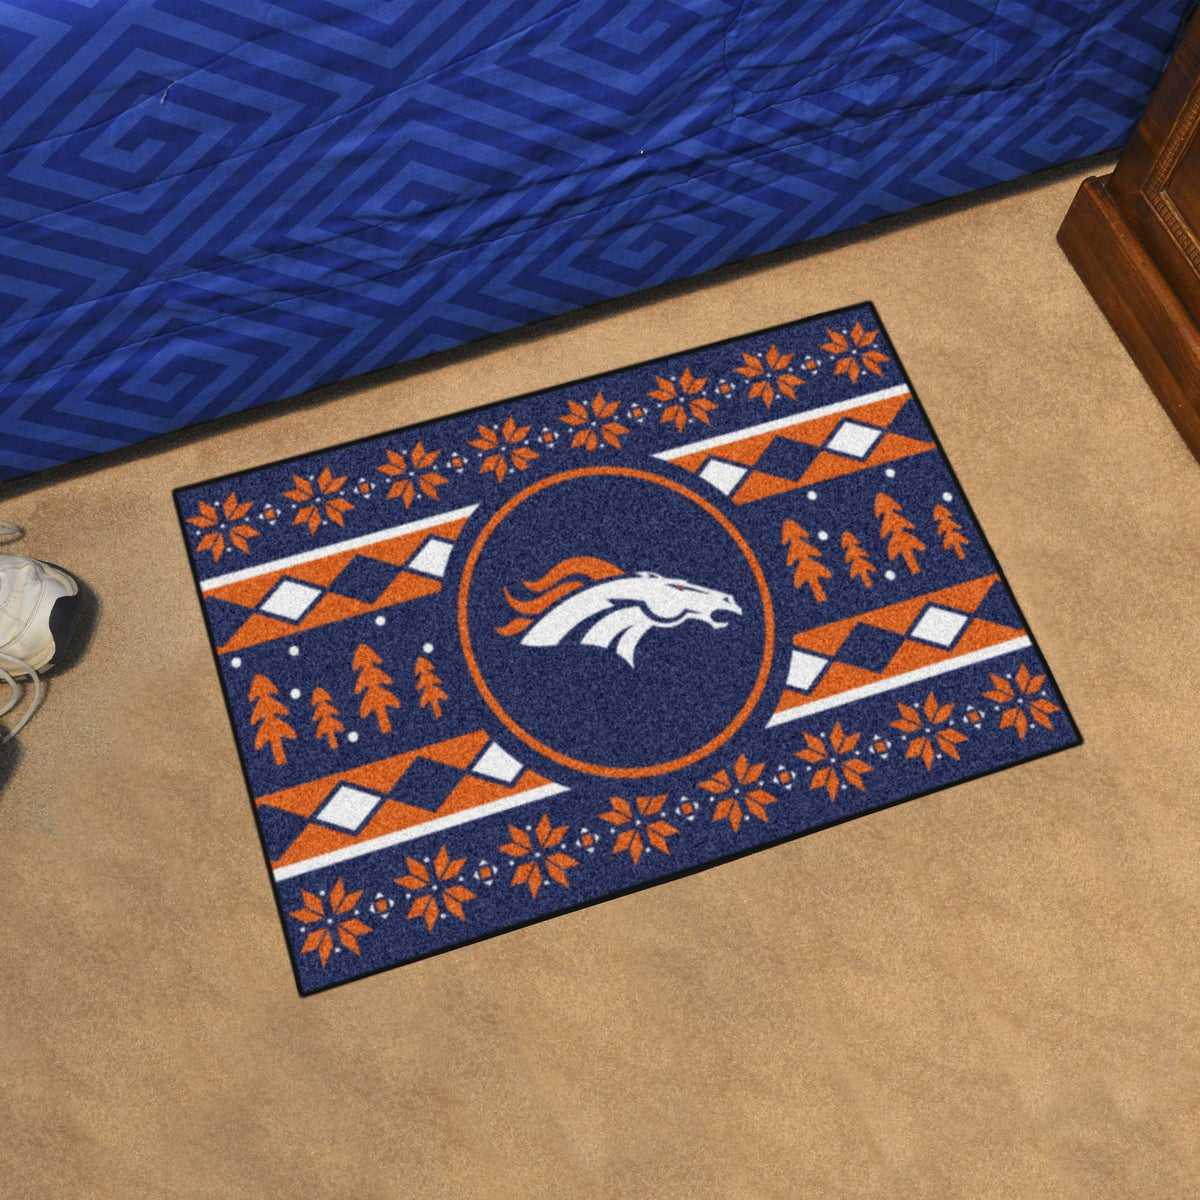 "NFL - Holiday Sweater Starter Mat, 19"" x 30"" NFL Mats, Rectangular Mats, Holiday Sweater Starter Mat, NFL, Home Fan Mats Denver Broncos"